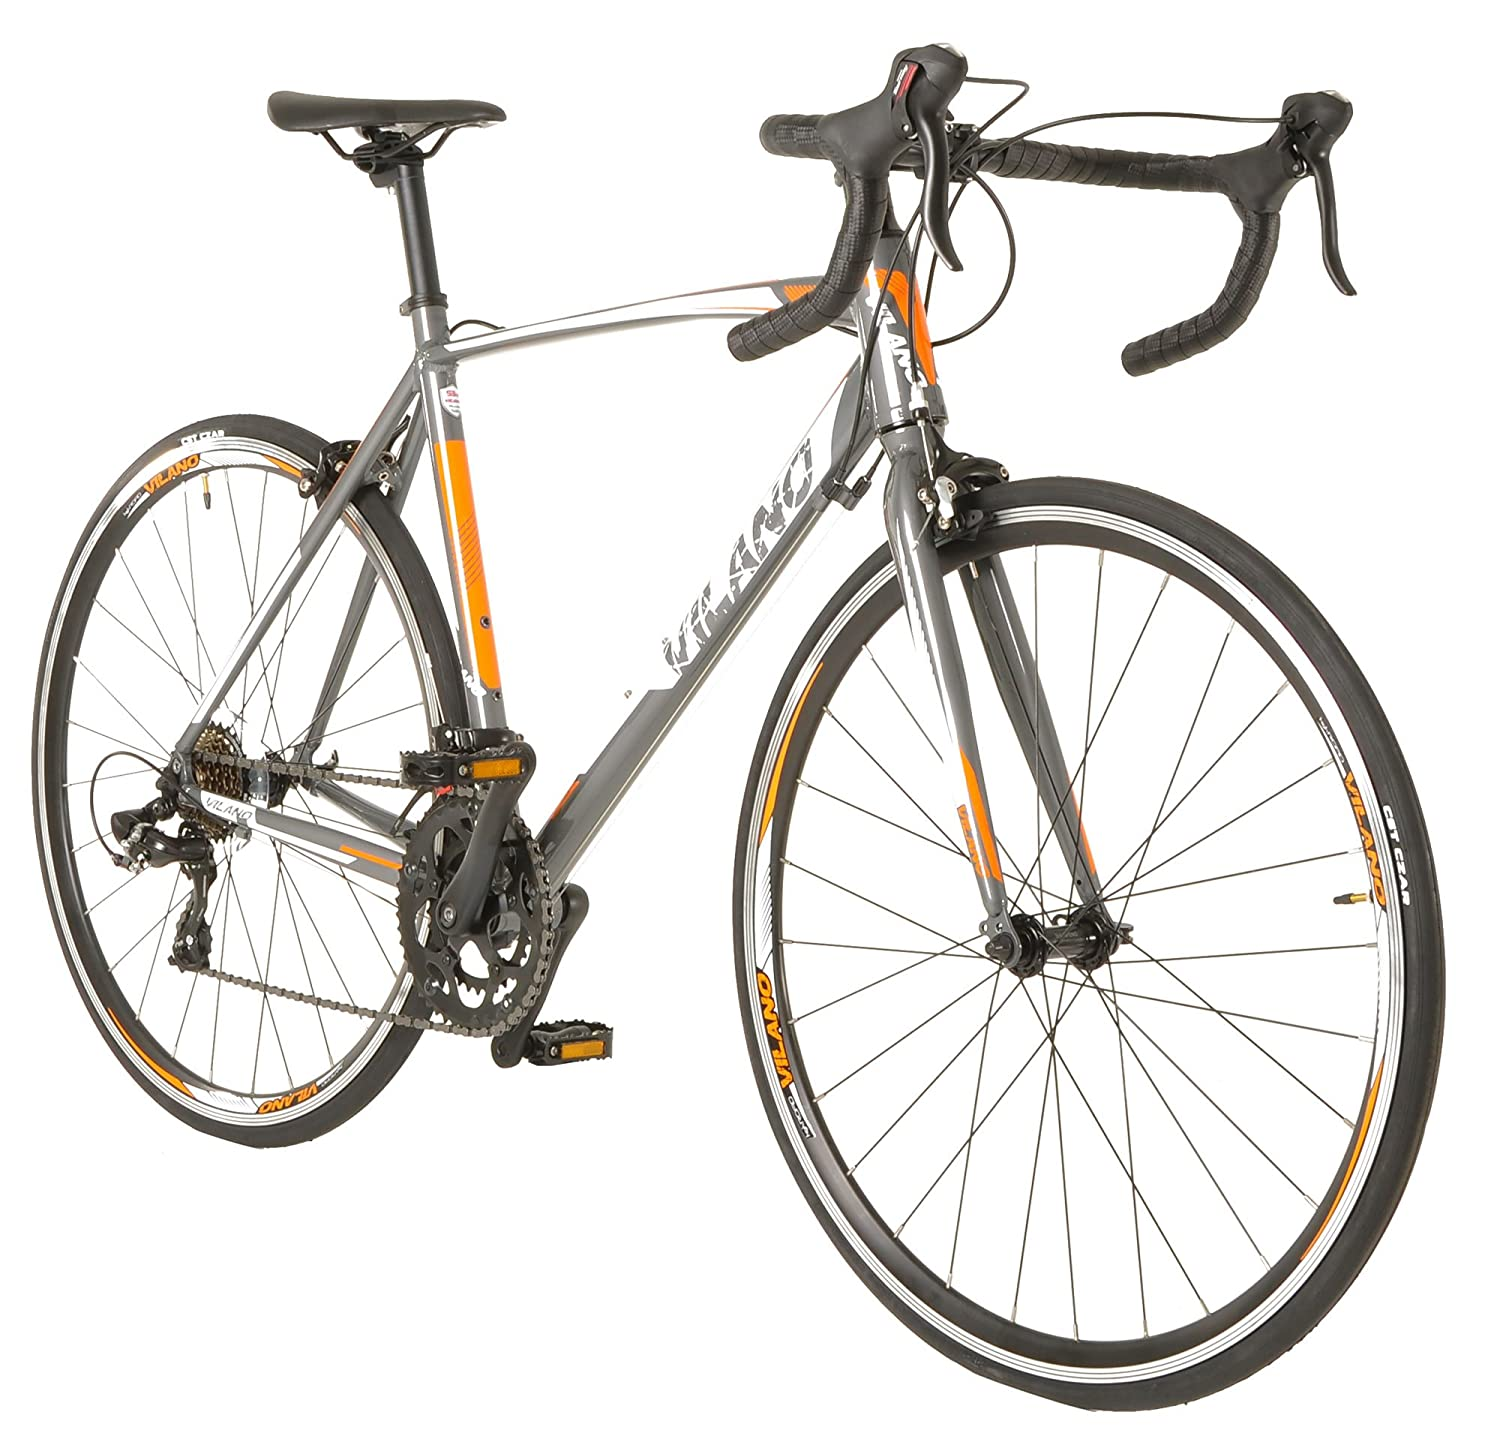 Vilano Shadow 2.0 Road Bike Review